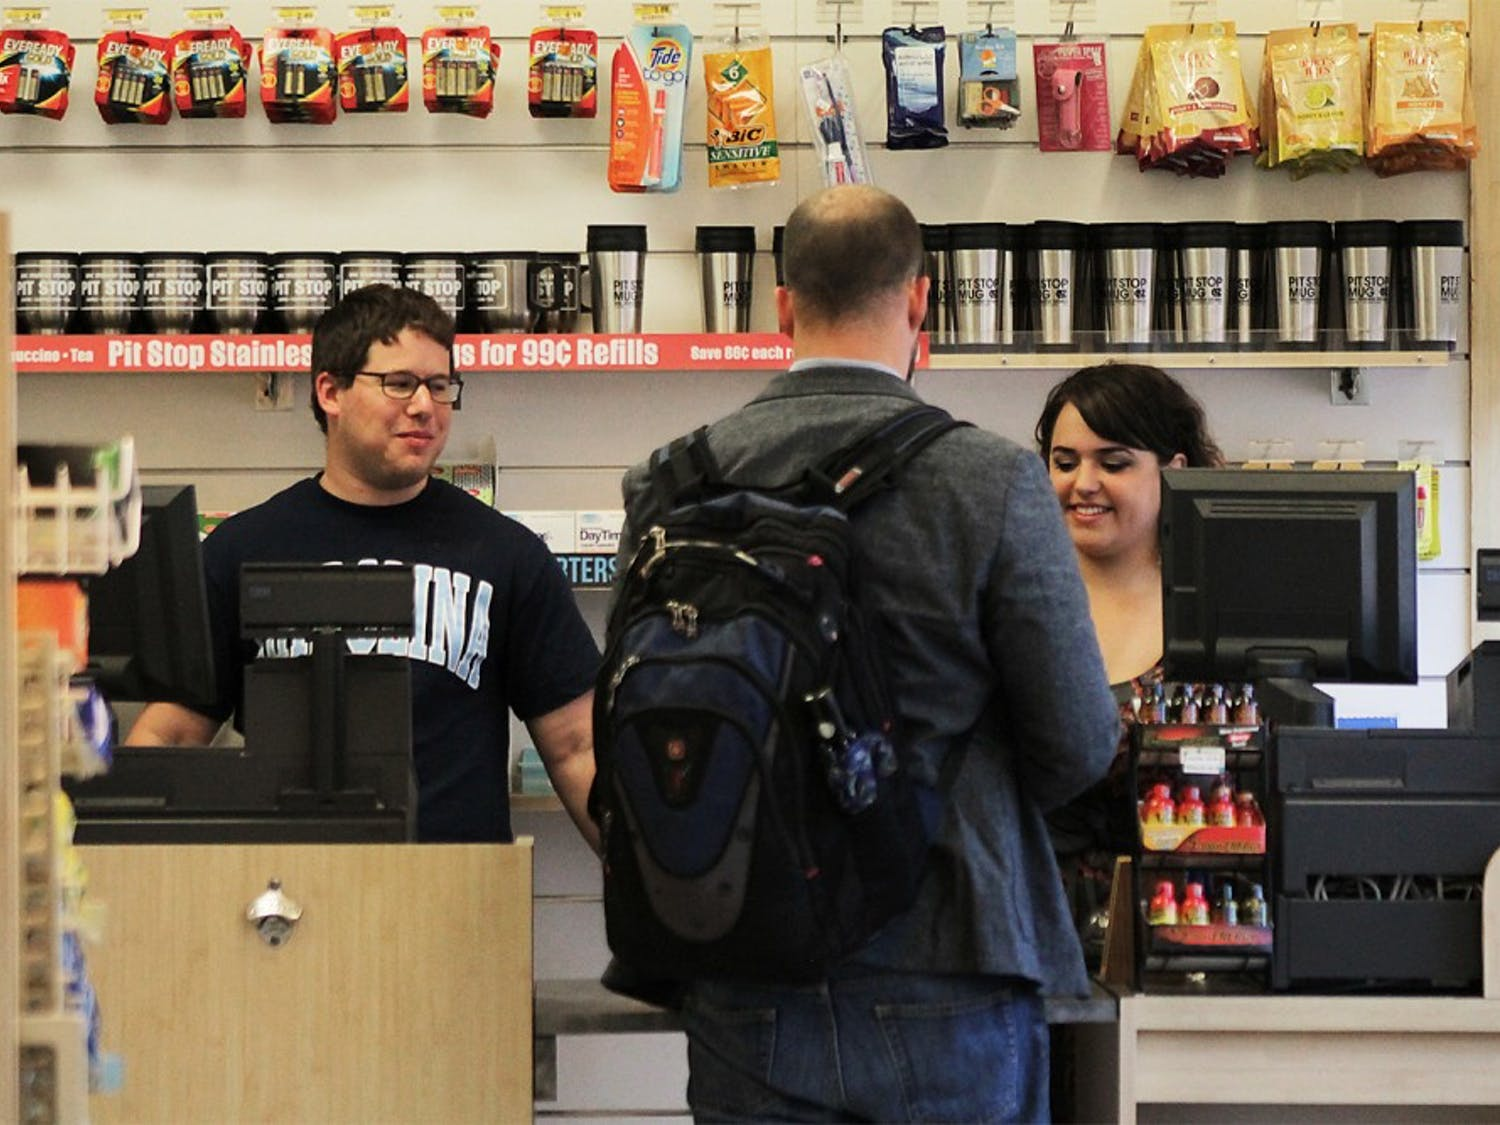 David Deans, from Rocky Mount, N.C. (left) and Katie Coletta (right), senior at English program, from Cary, N.C. are helping Michael Knight, a Ph.D candidate at the Department of Religious Studies check out snacks he buys Tuesday at the Pit Stop.